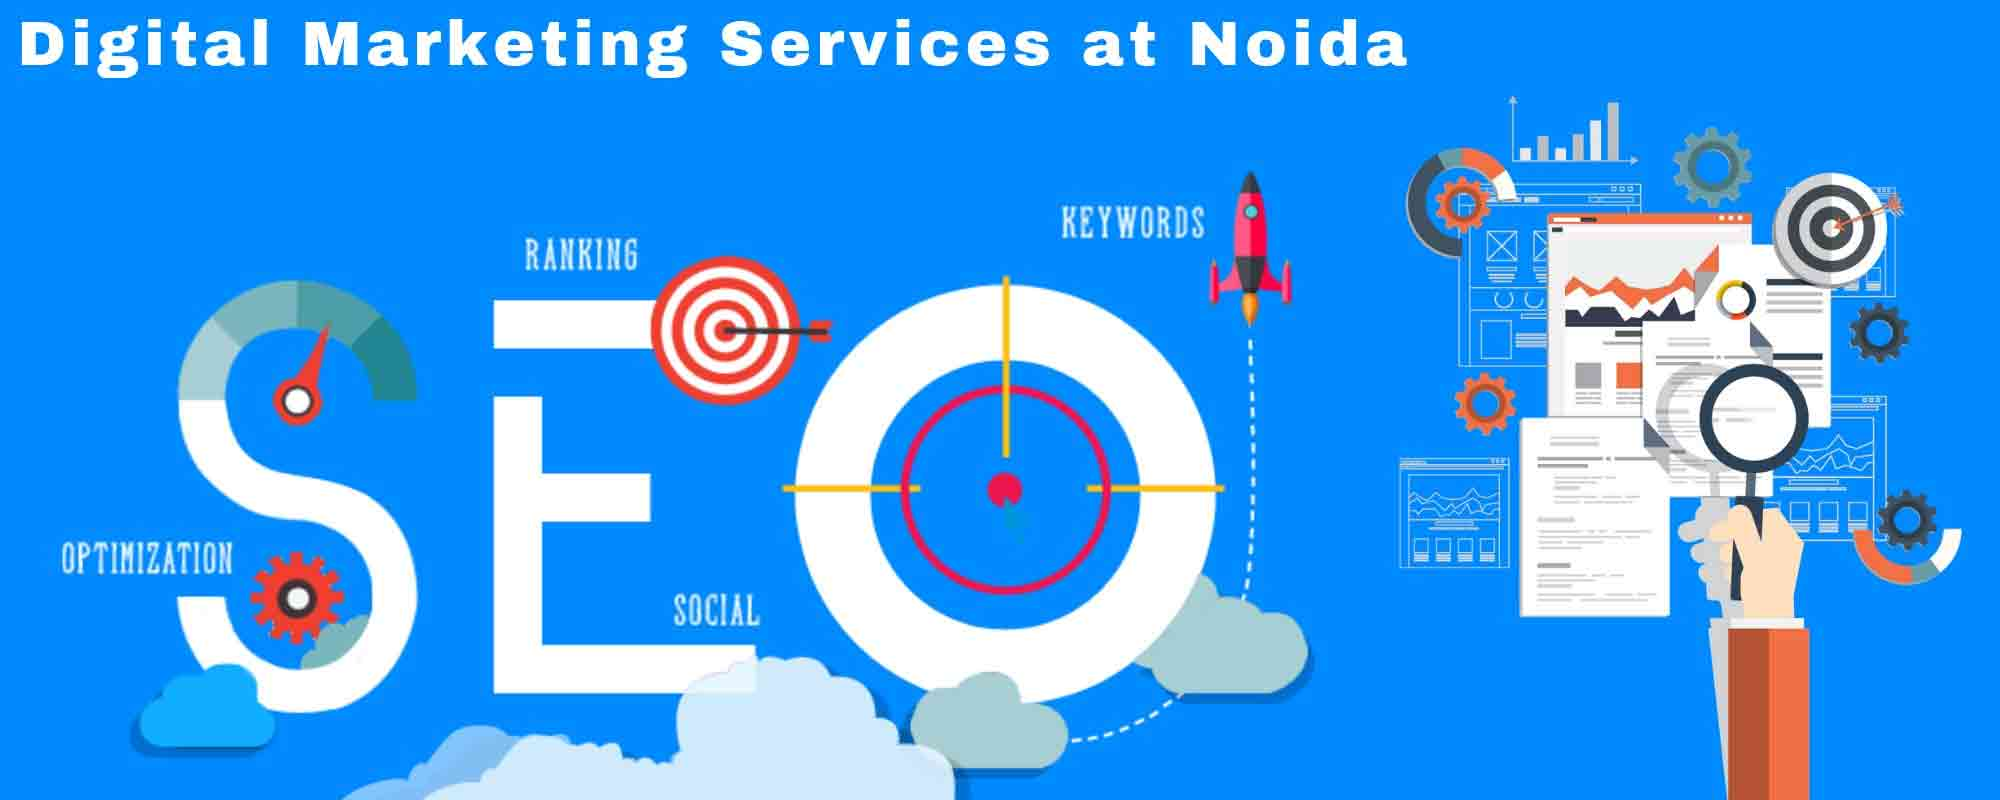 Digital Marketing Services at Noida